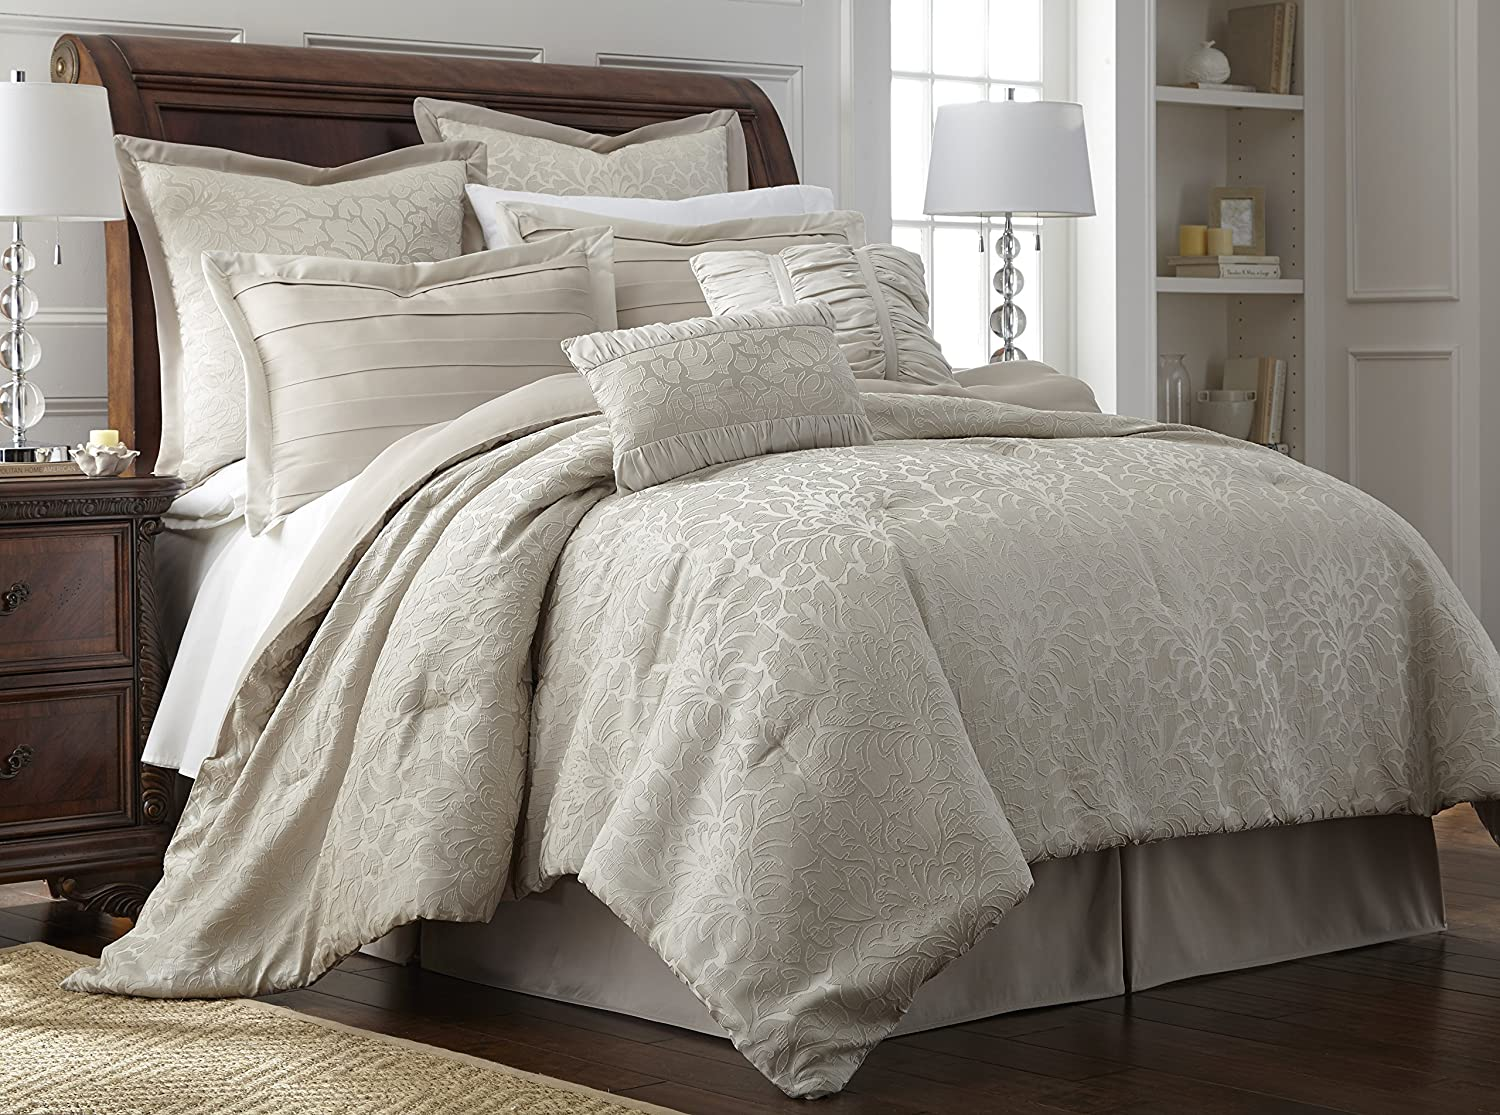 Pacific Coast Textiles 38EMBCFB-SAM-KG 8-Piece Samantha Comforter Set, King, Ivory